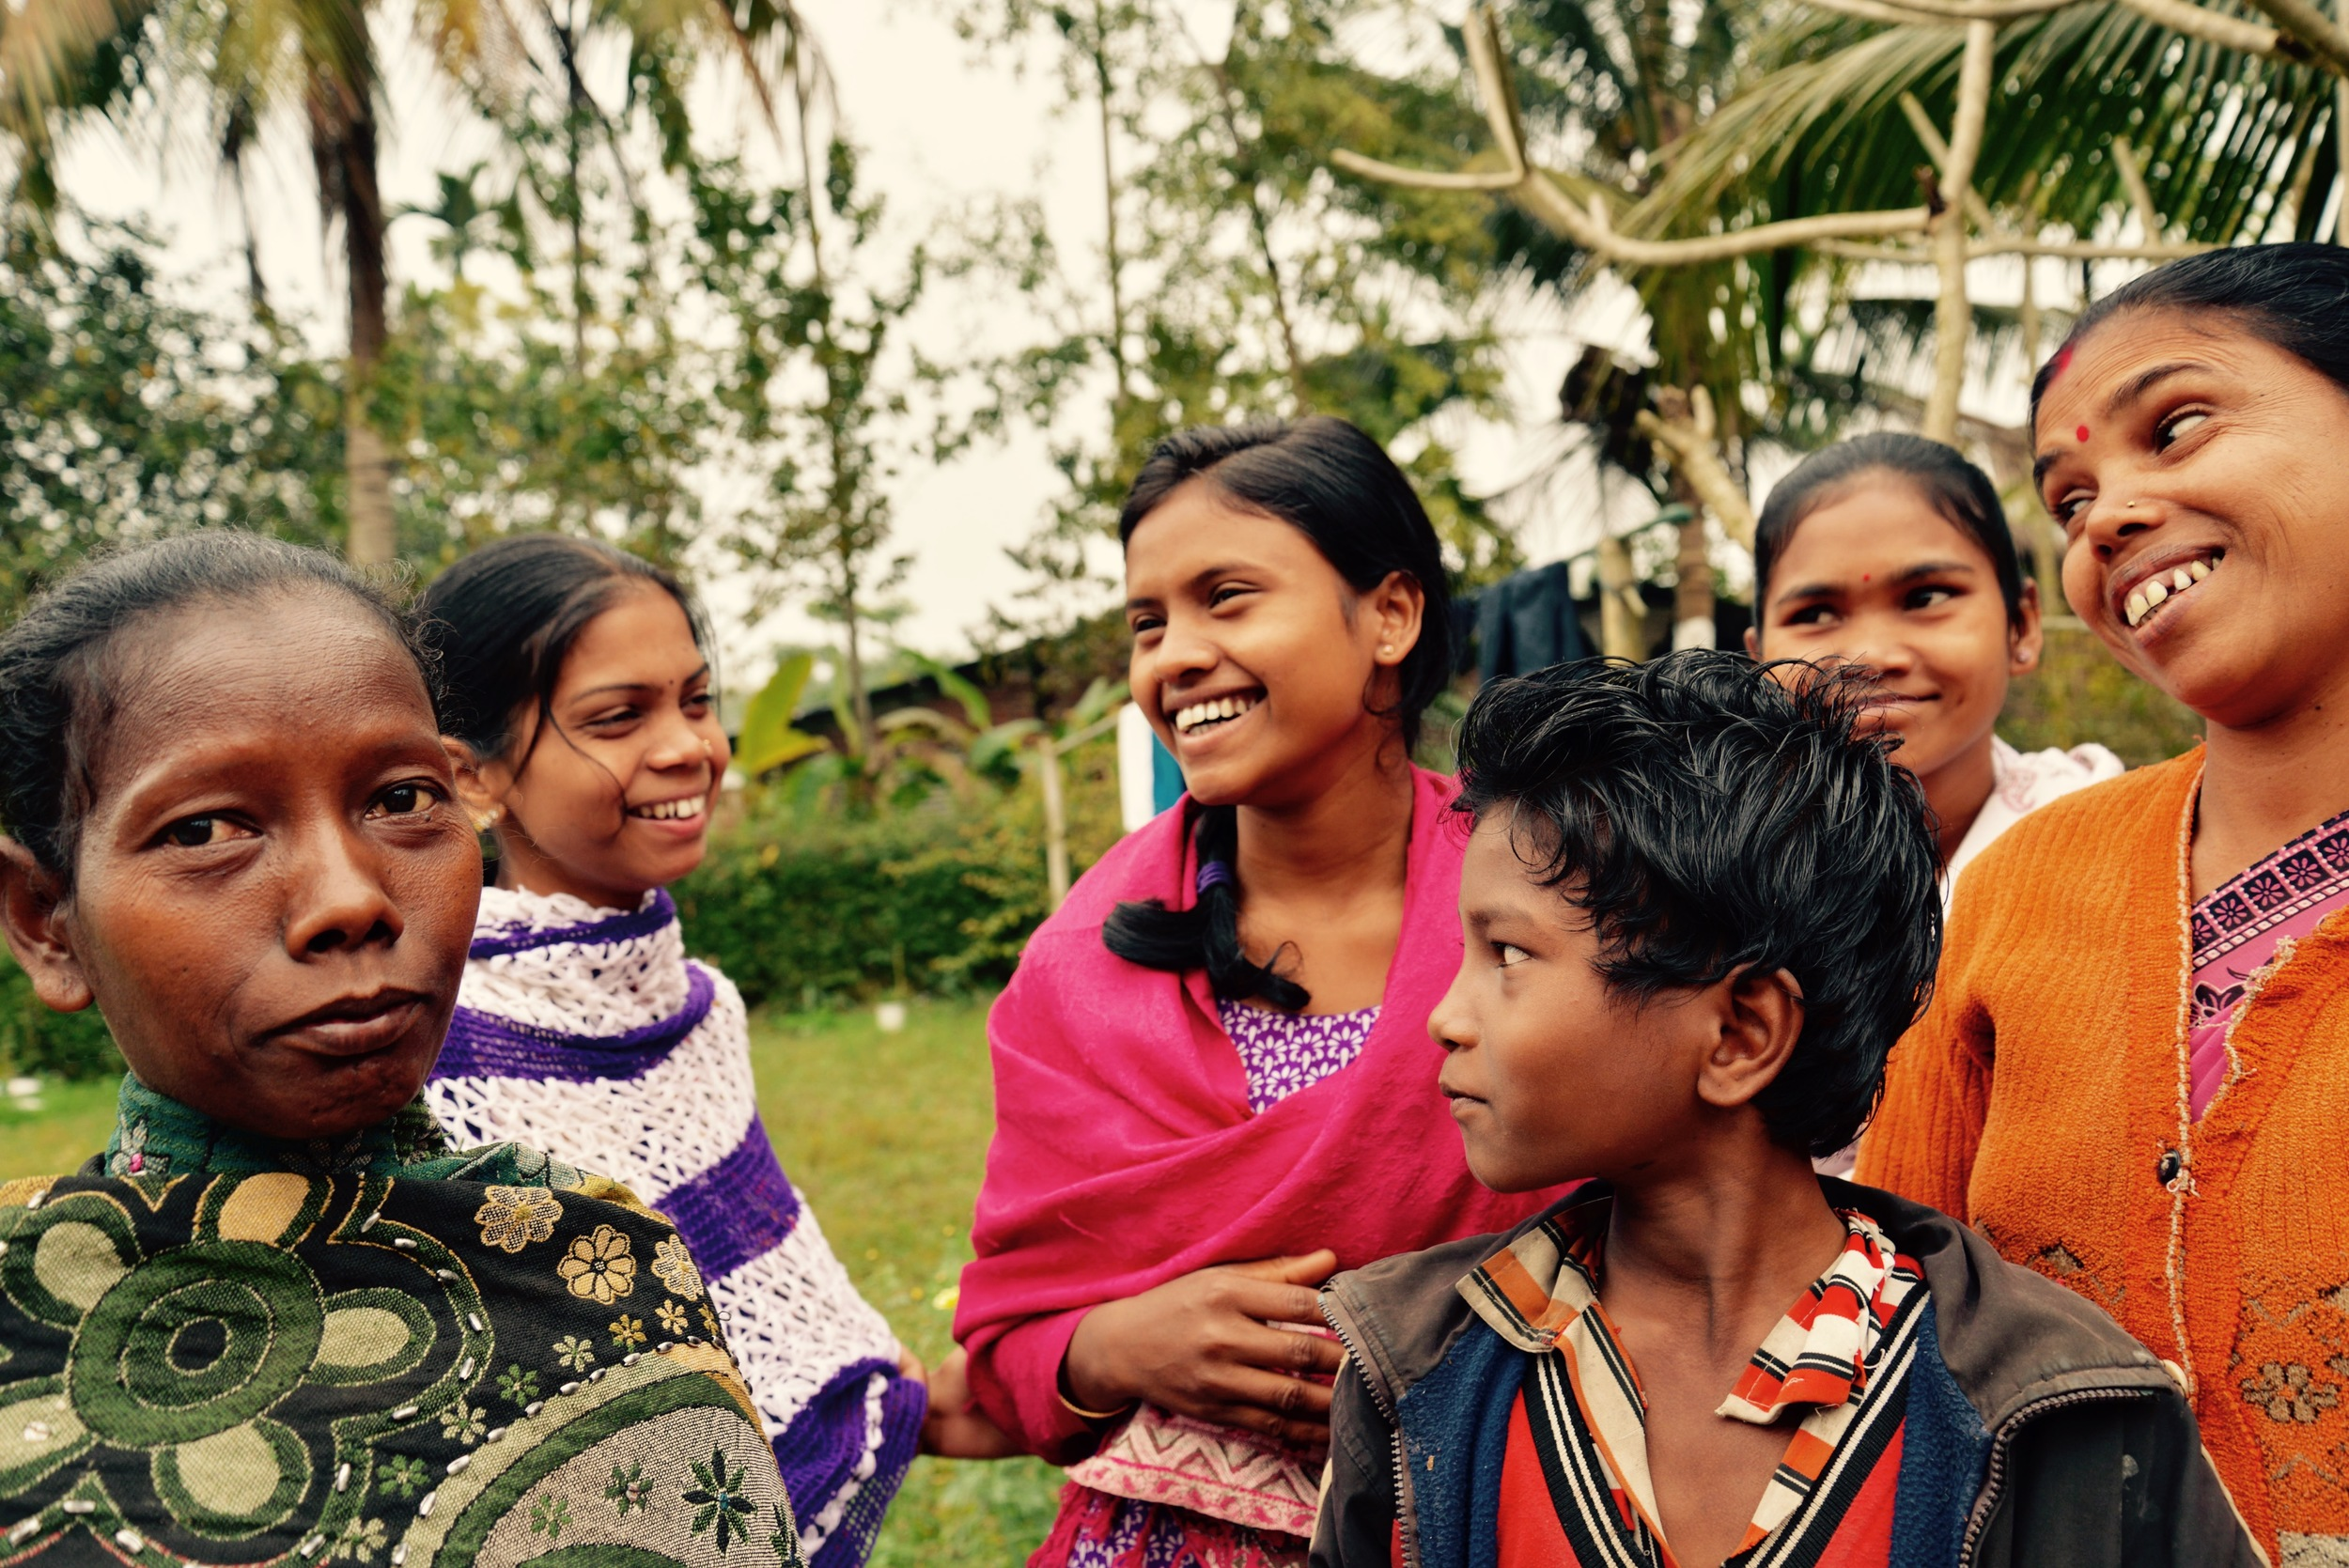 Sharing some laughs with the women who pluck tea at Pranjit's tea garden in Assam